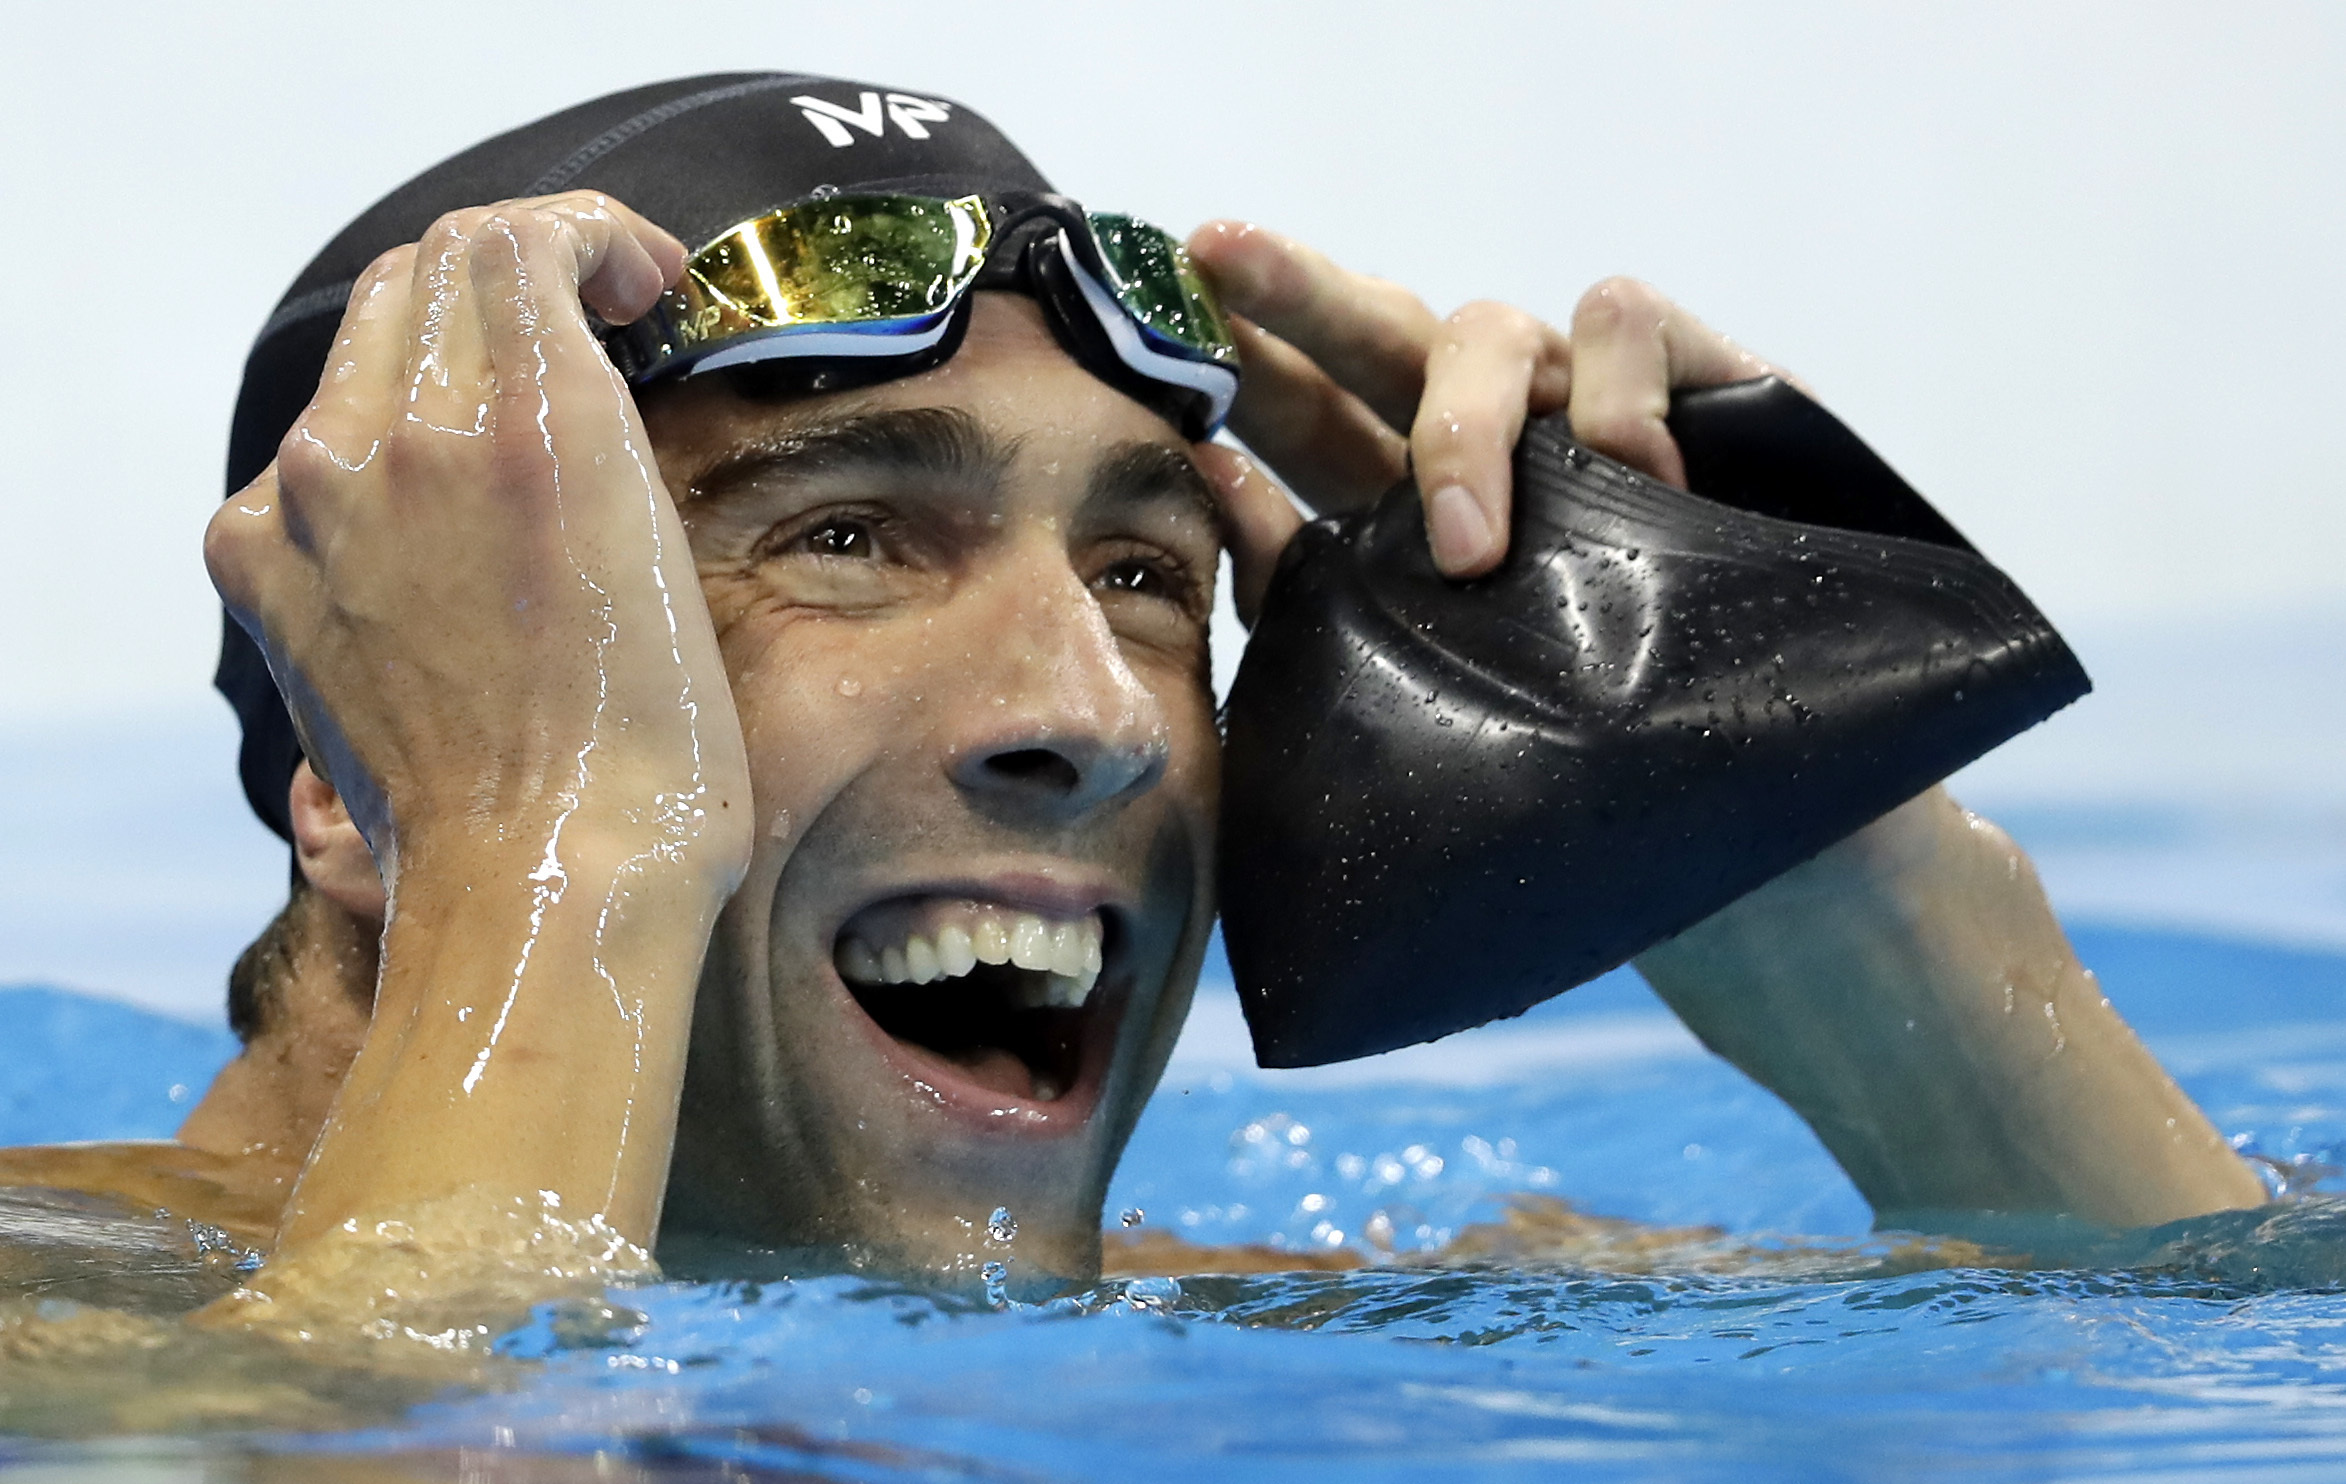 United States' Michael Phelps reacts after the men's 100-meter butterfly final during the swimming competitions at the 2016 Summer Olympics, Friday, Aug. 12, 2016, in Rio de Janeiro, Brazil.